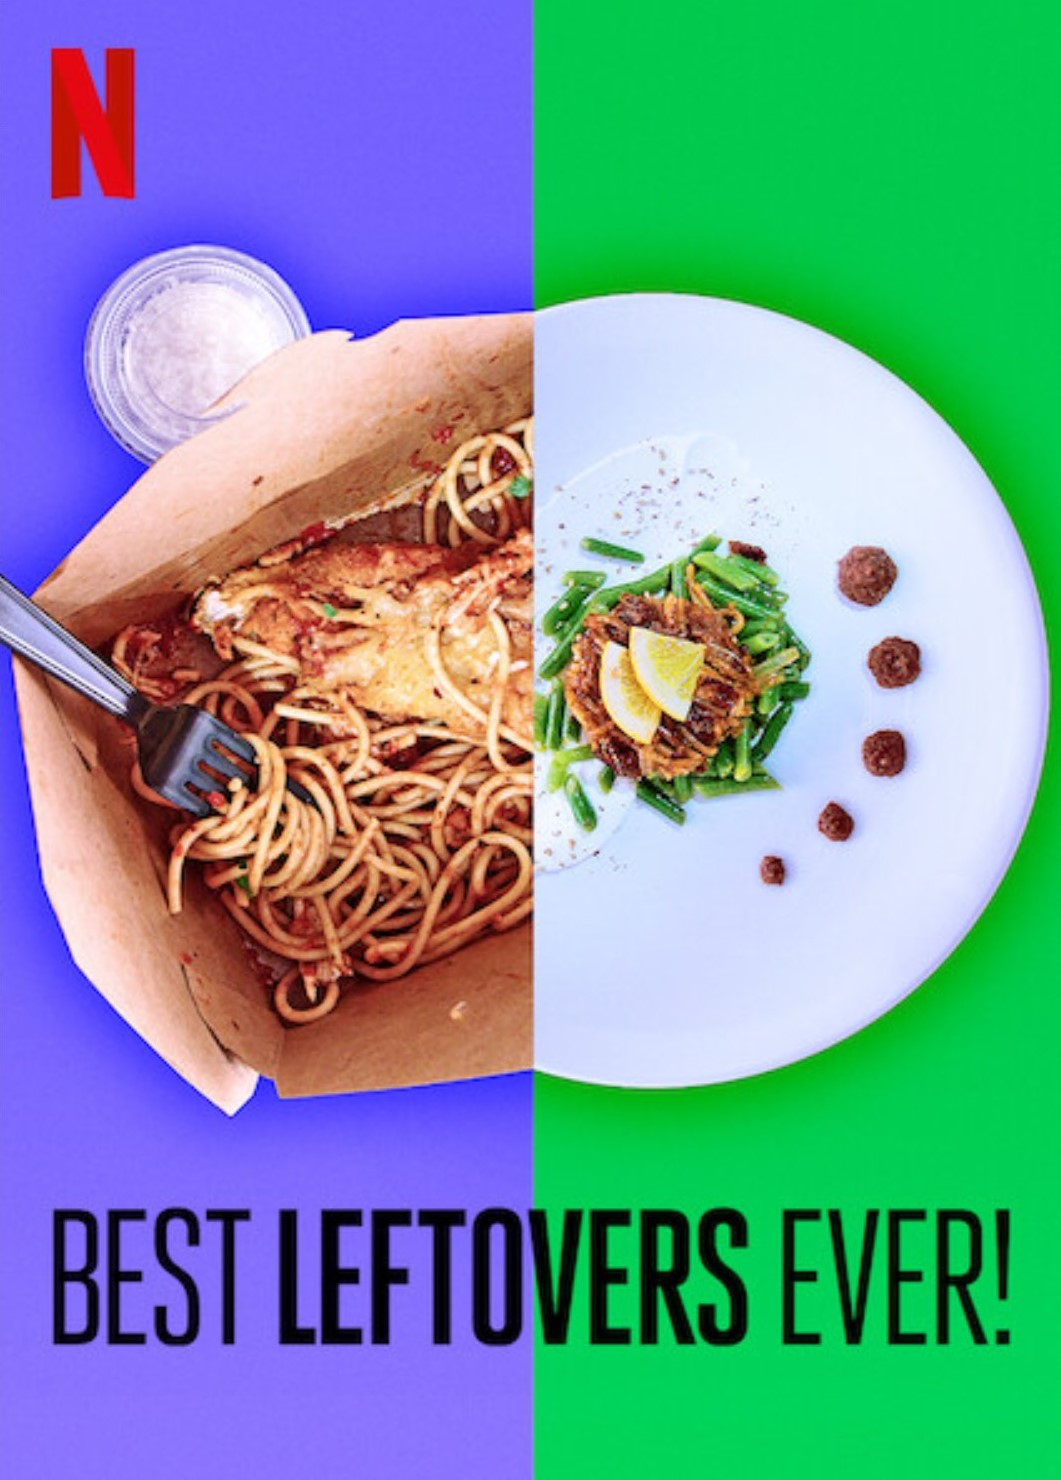 Best Leftovers Ever! is Coming to Netflix!